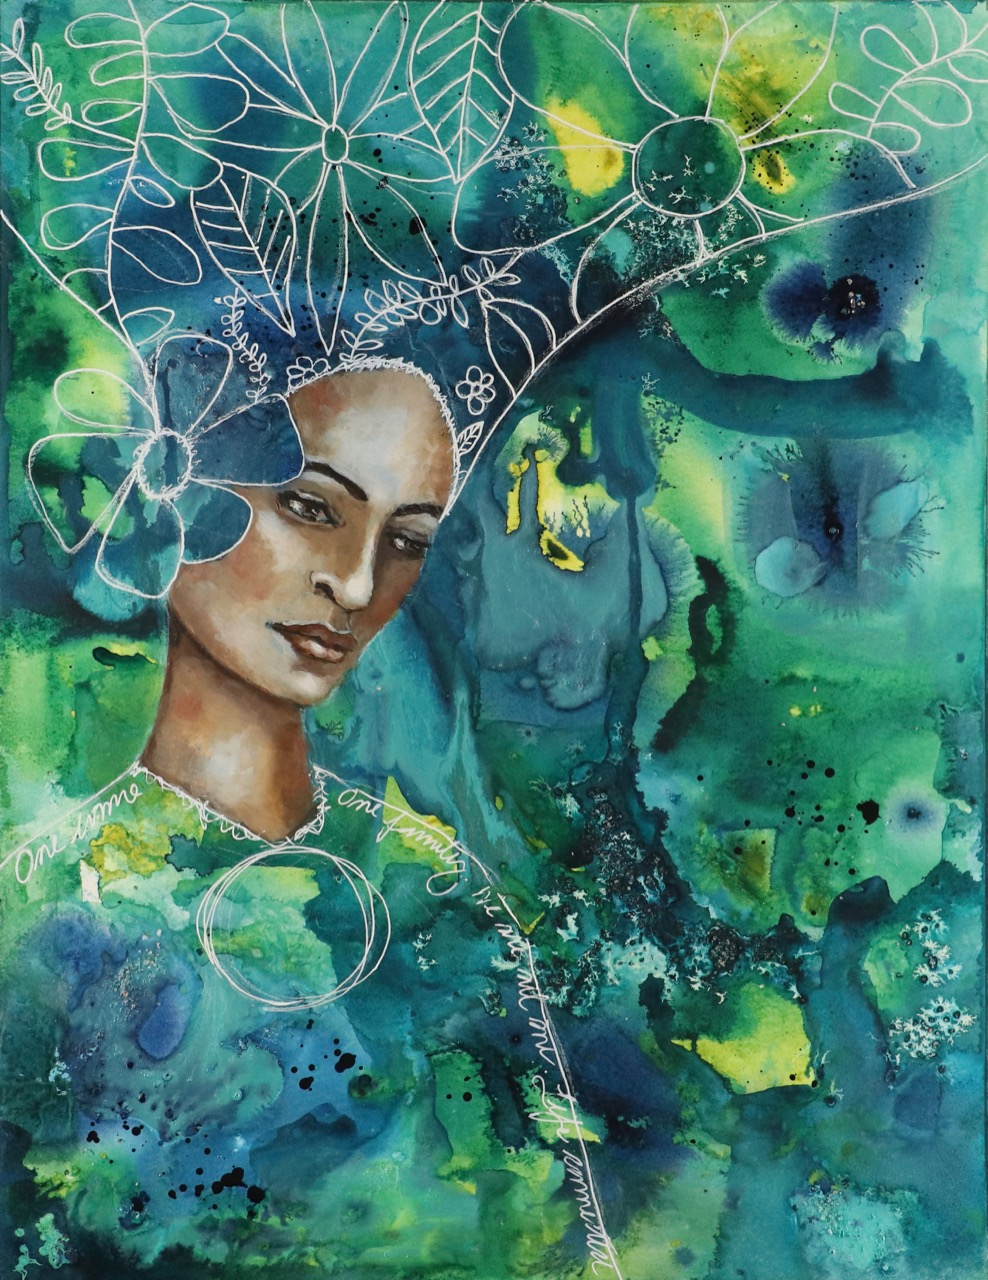 Earth Mother, a mixed media portrait by Melanie Rivers